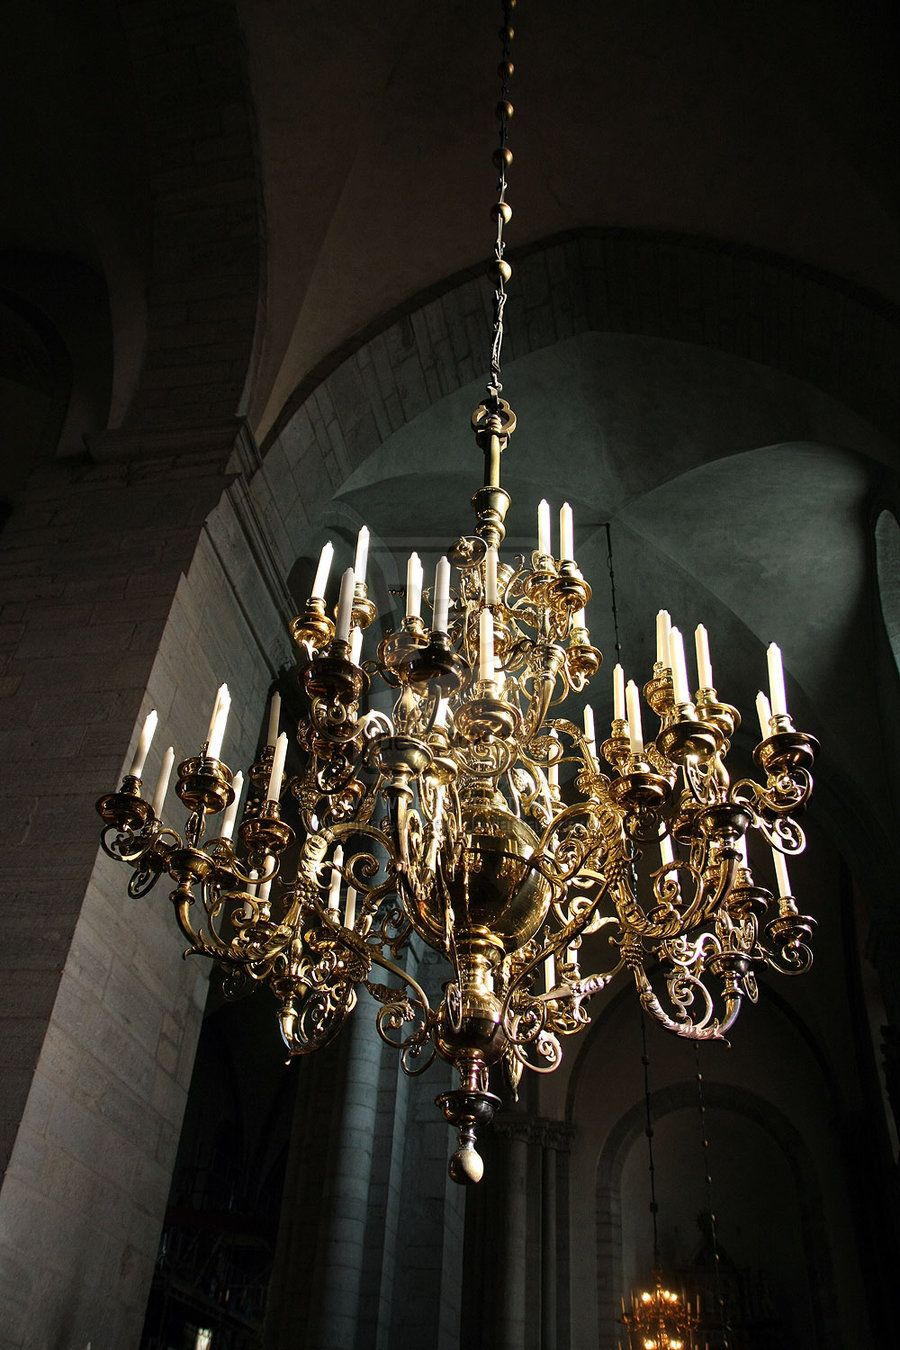 Desvre Candelabra Chandeliers World Decor Gold Chandelier